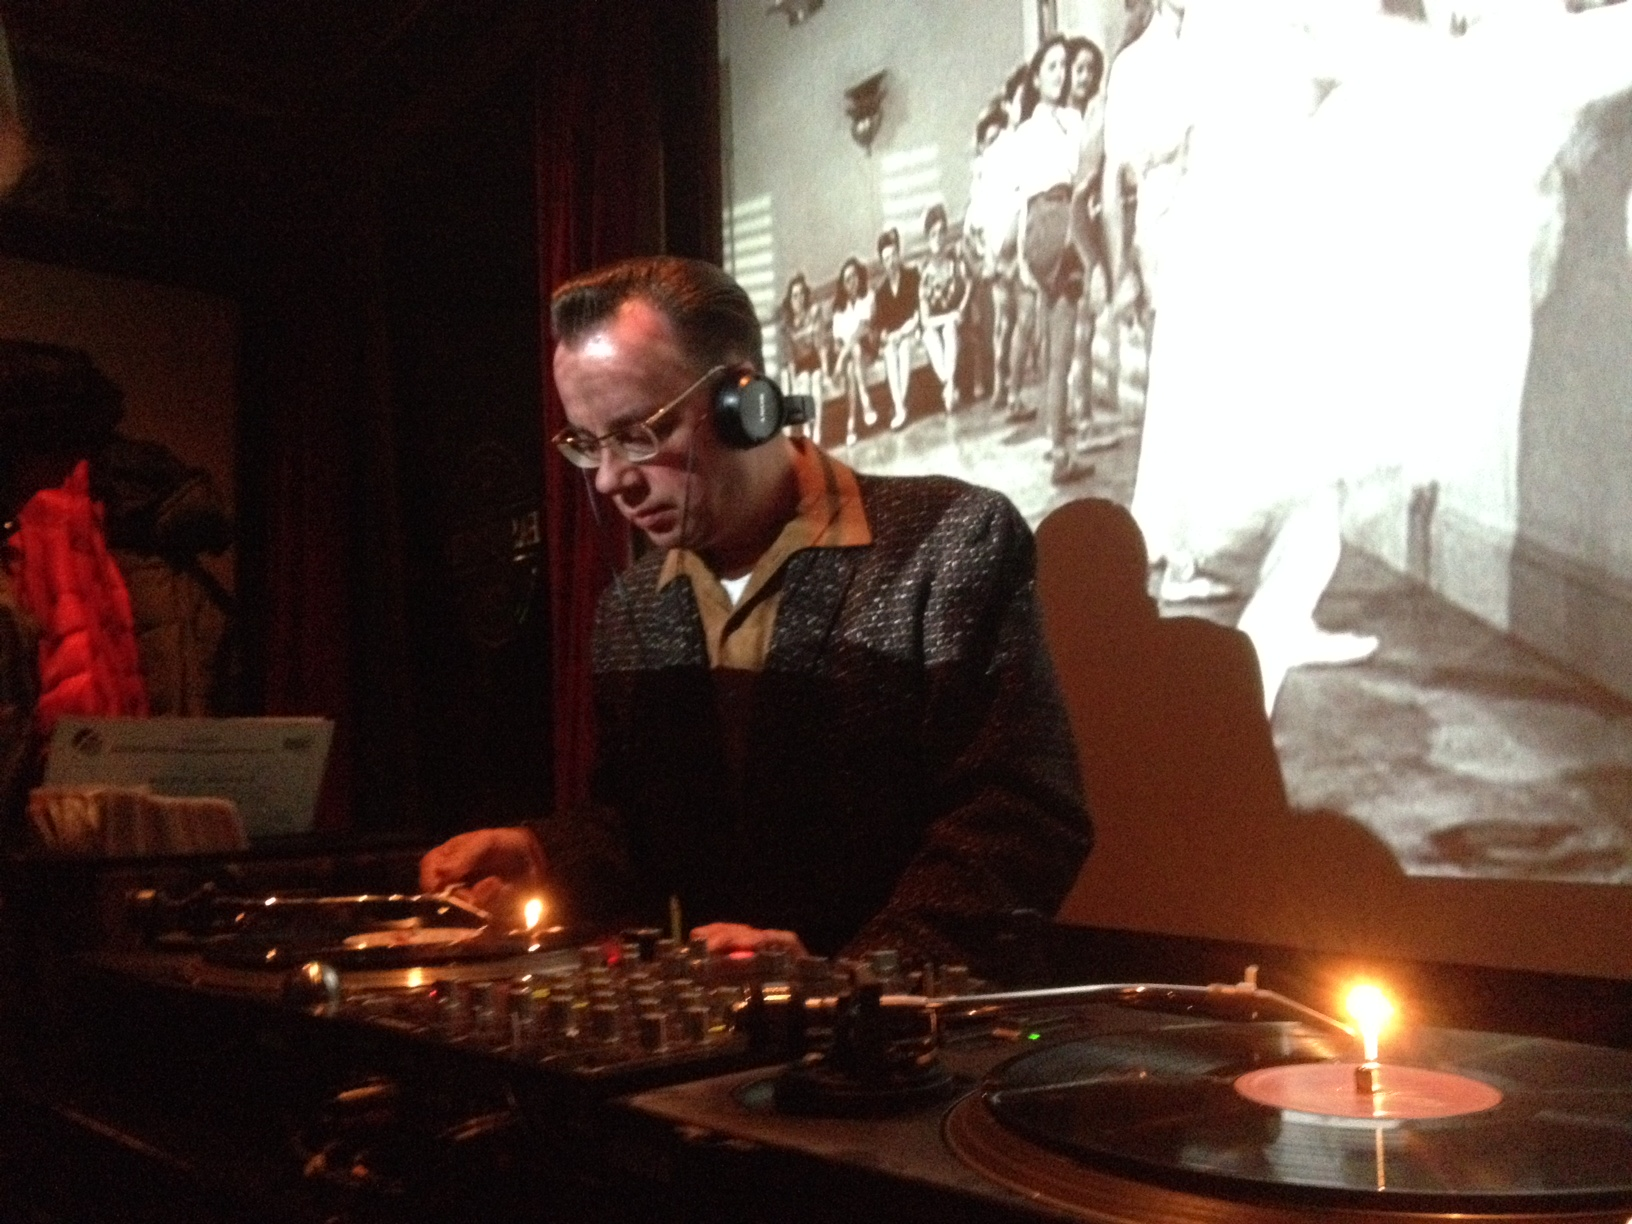 DJ Gentleman at work - Thommy 'Reverend' Rinke in der Old Fashioned Bar